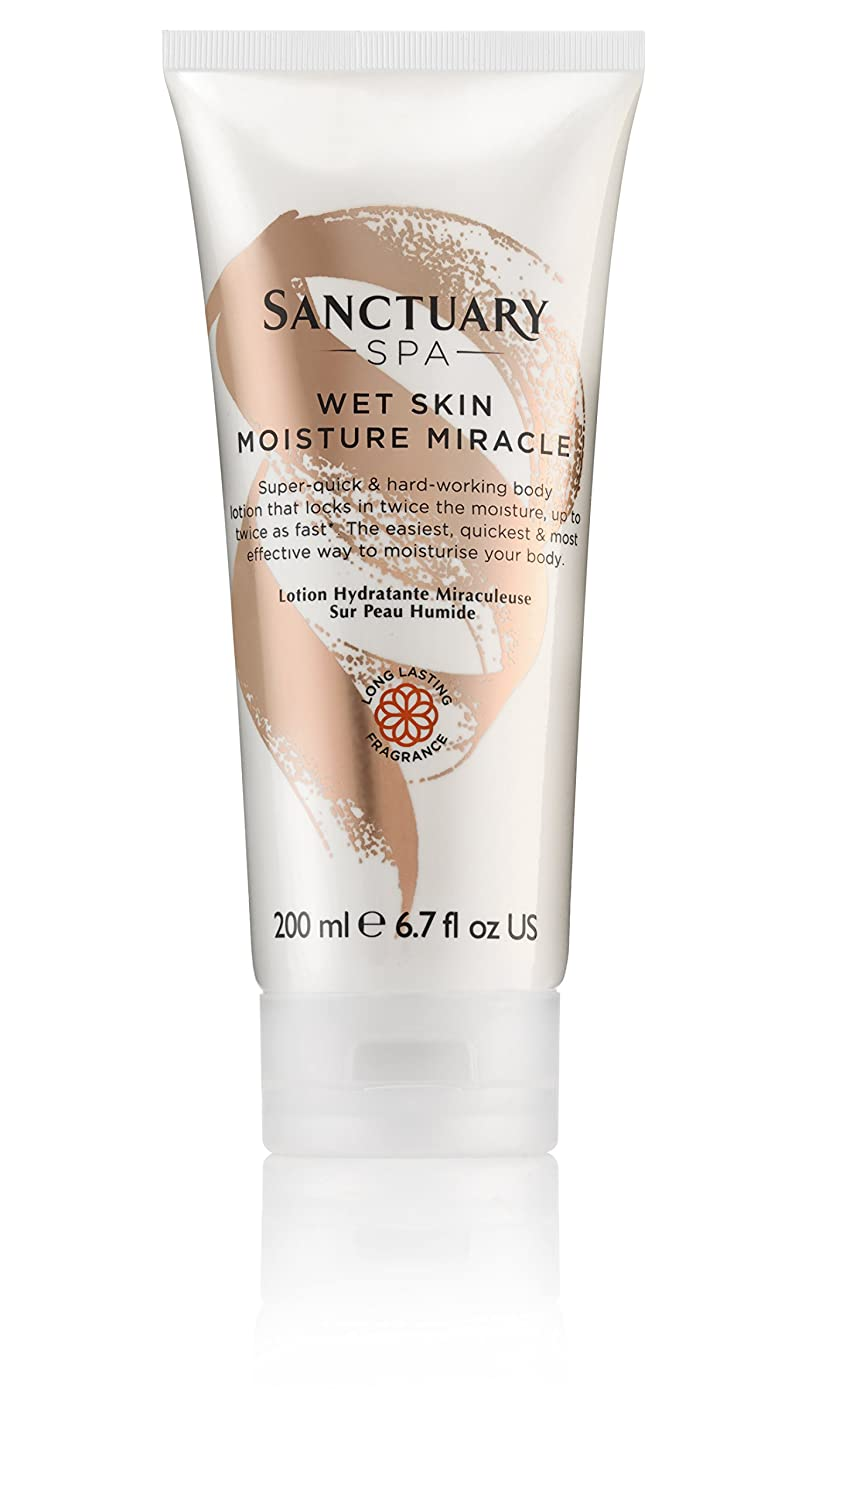 Sanctuary Spa Wet Skin Moisture Miracle Body Lotion 200ml